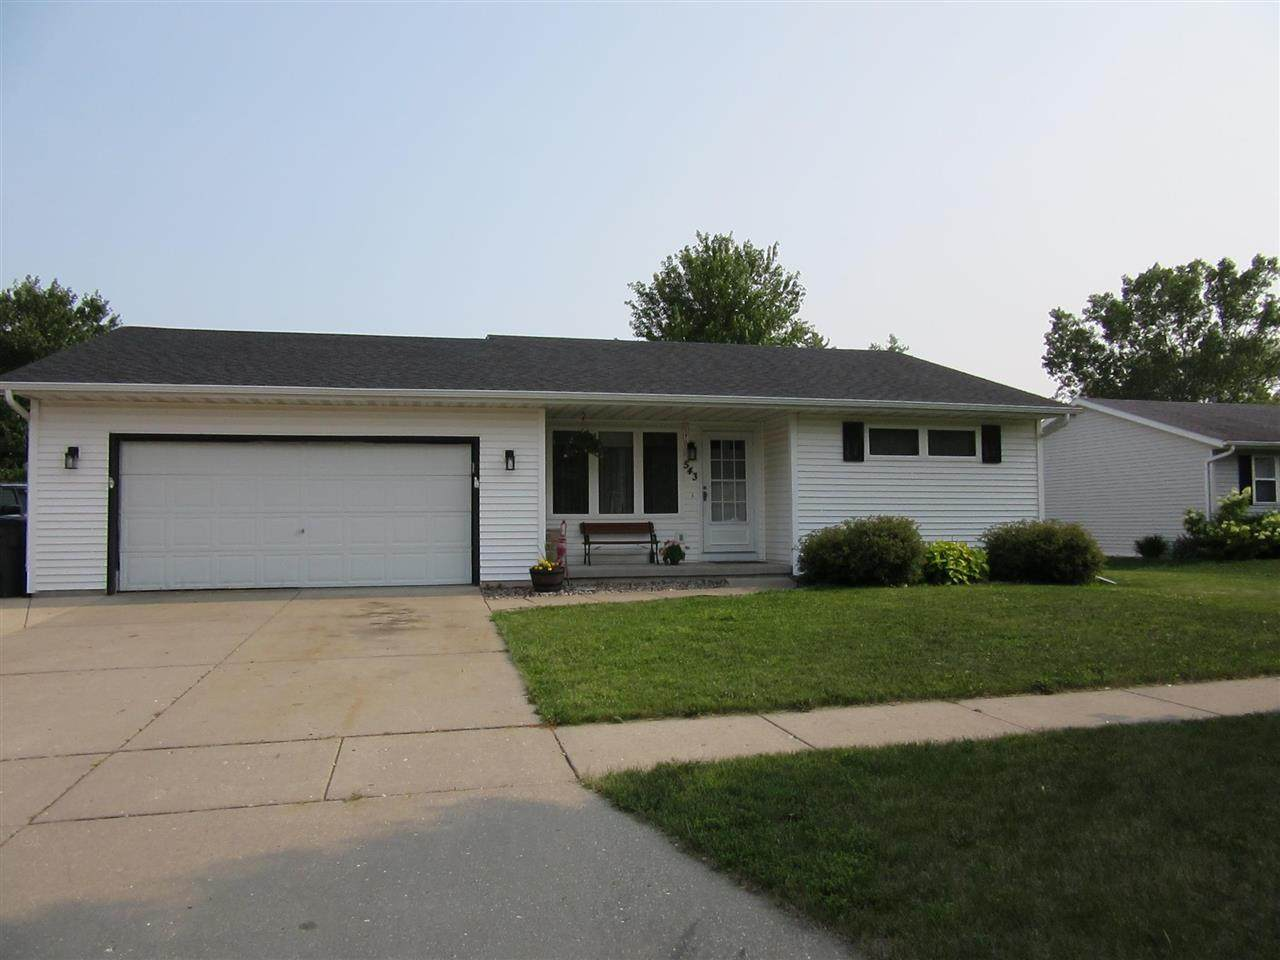 543 Countryside Dr - Photo 1